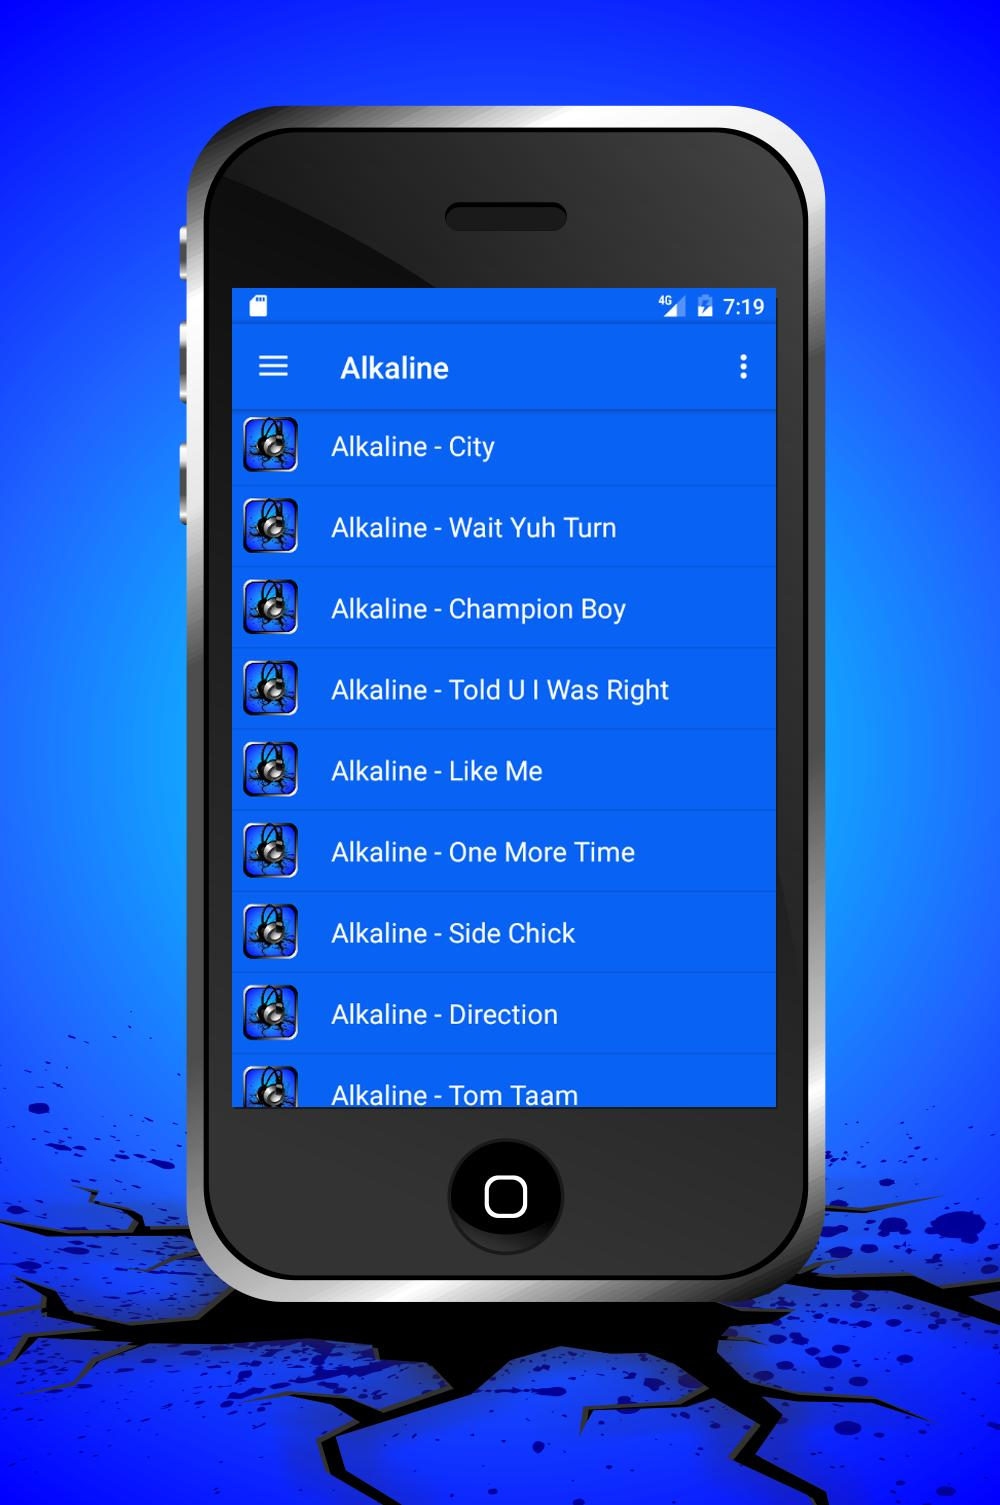 Alkaline - CITY Songs for Android - APK Download